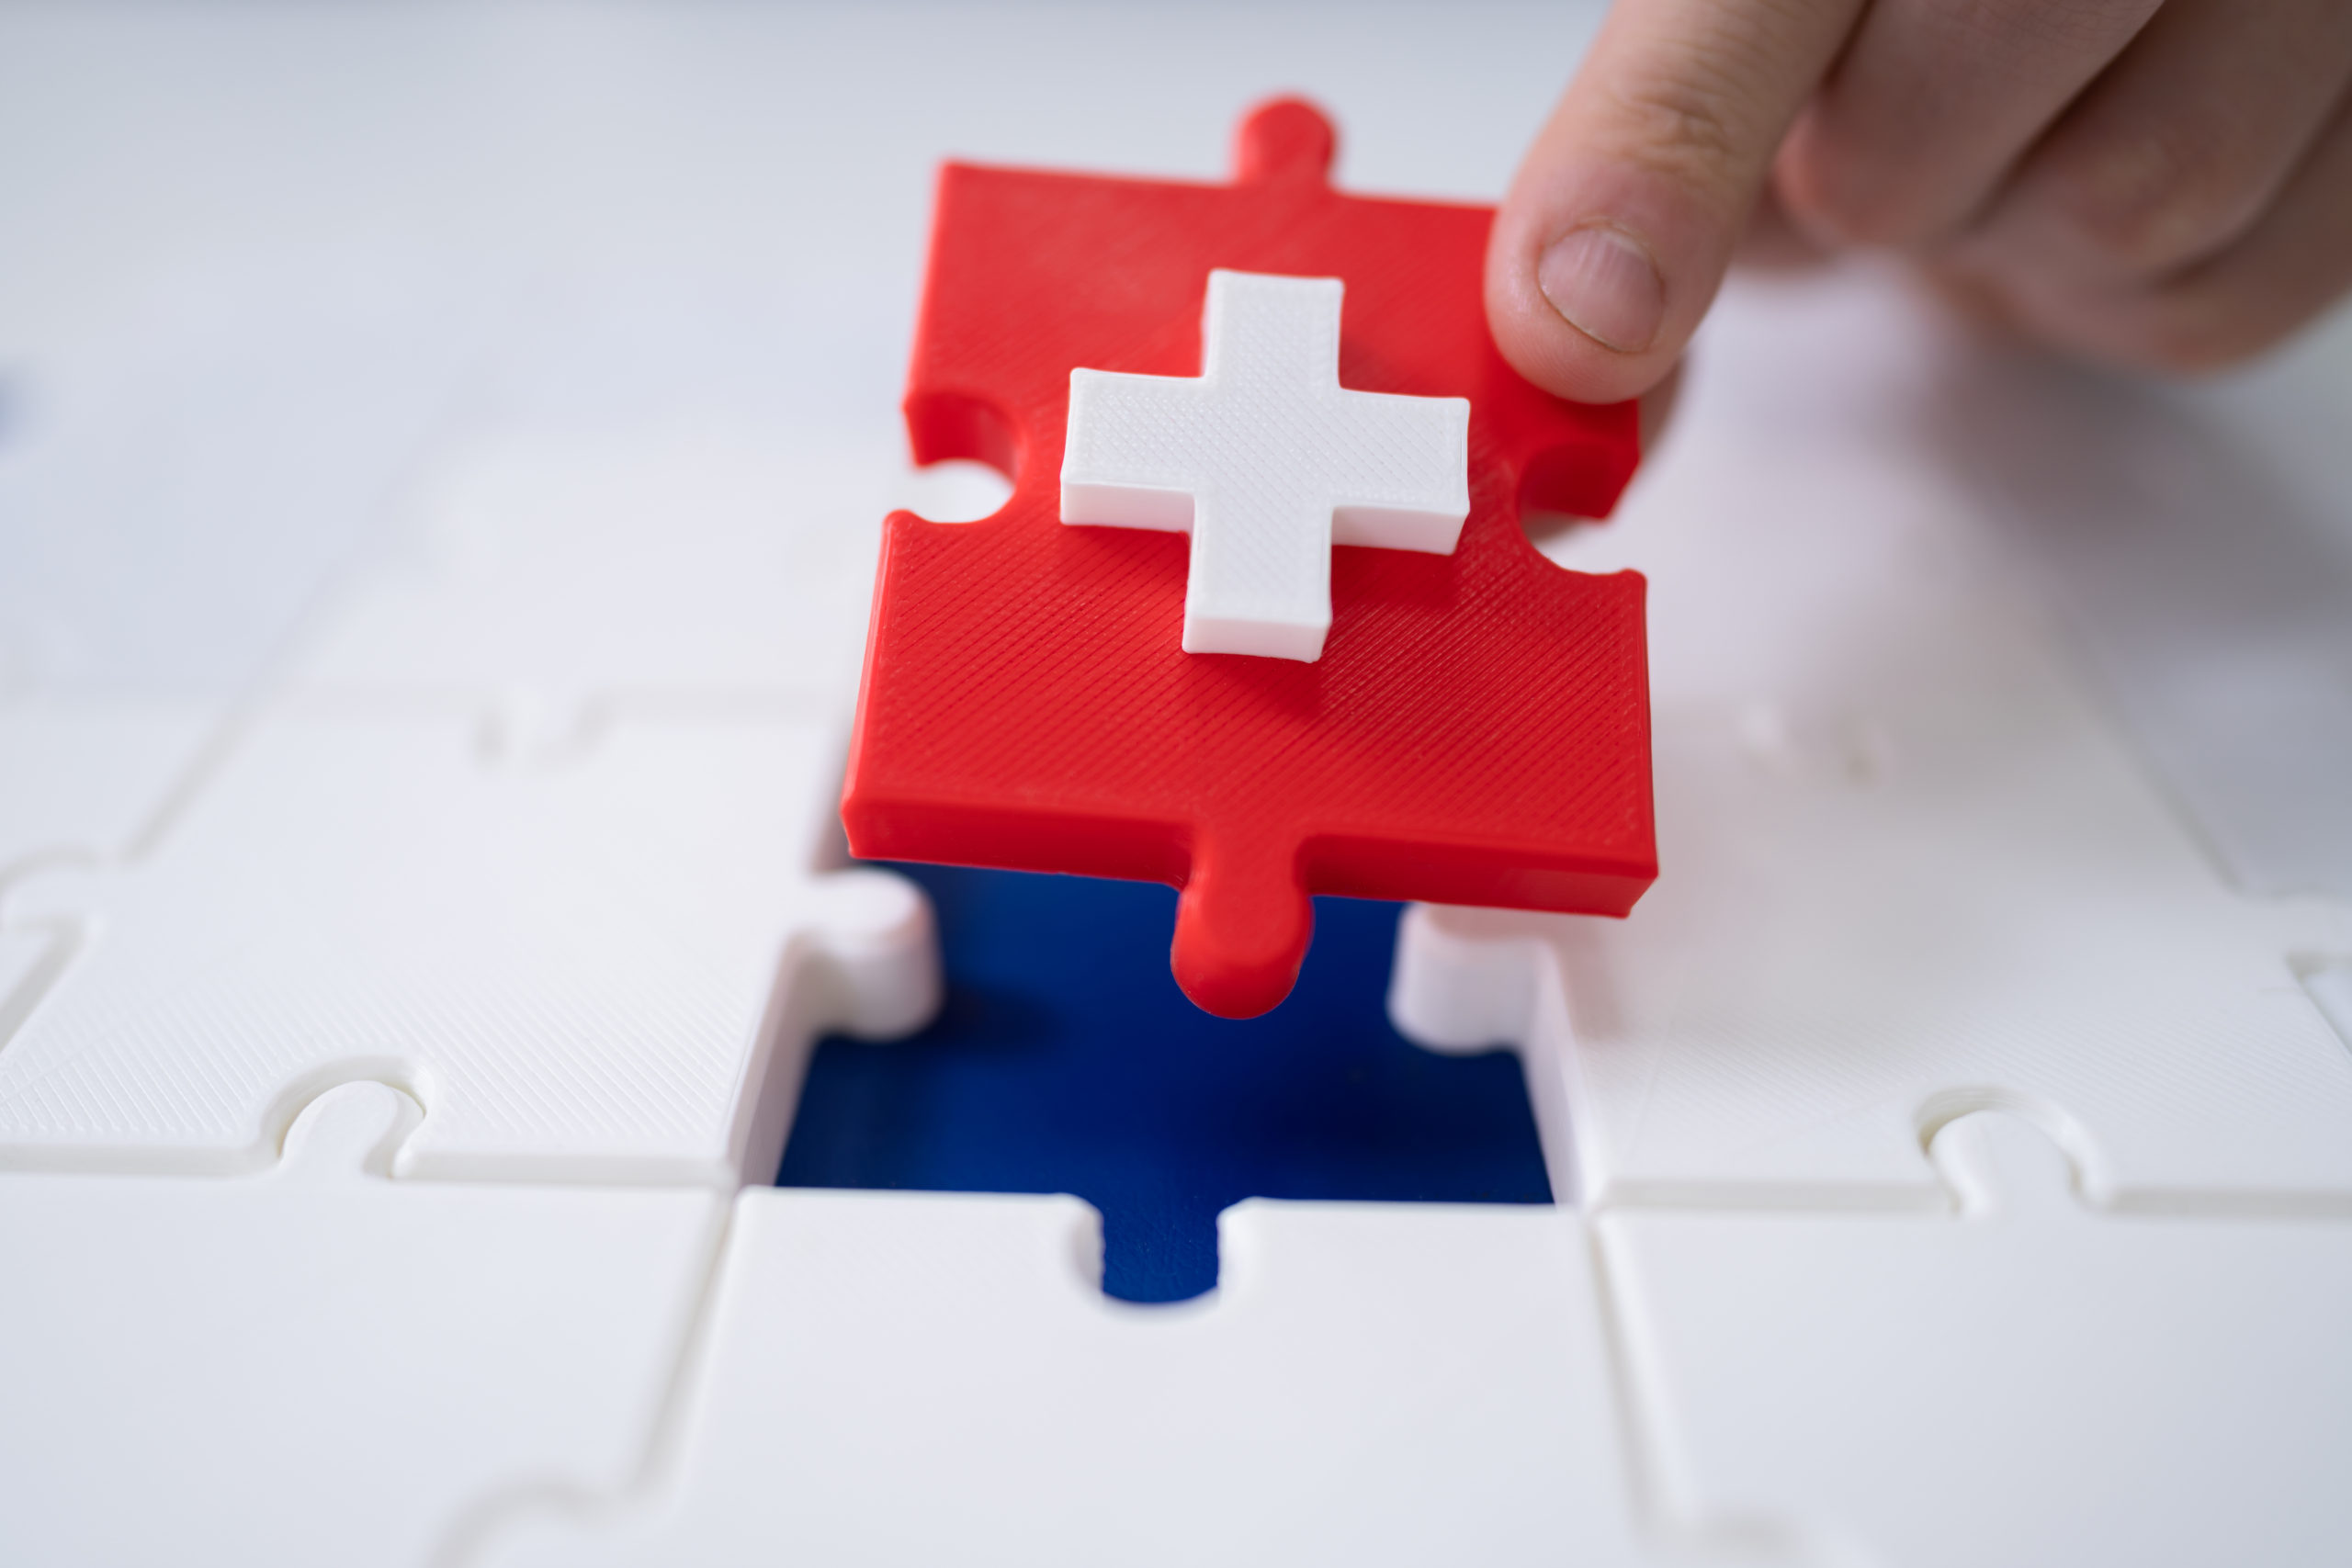 Man's Hand Solving Jigsaw Puzzle